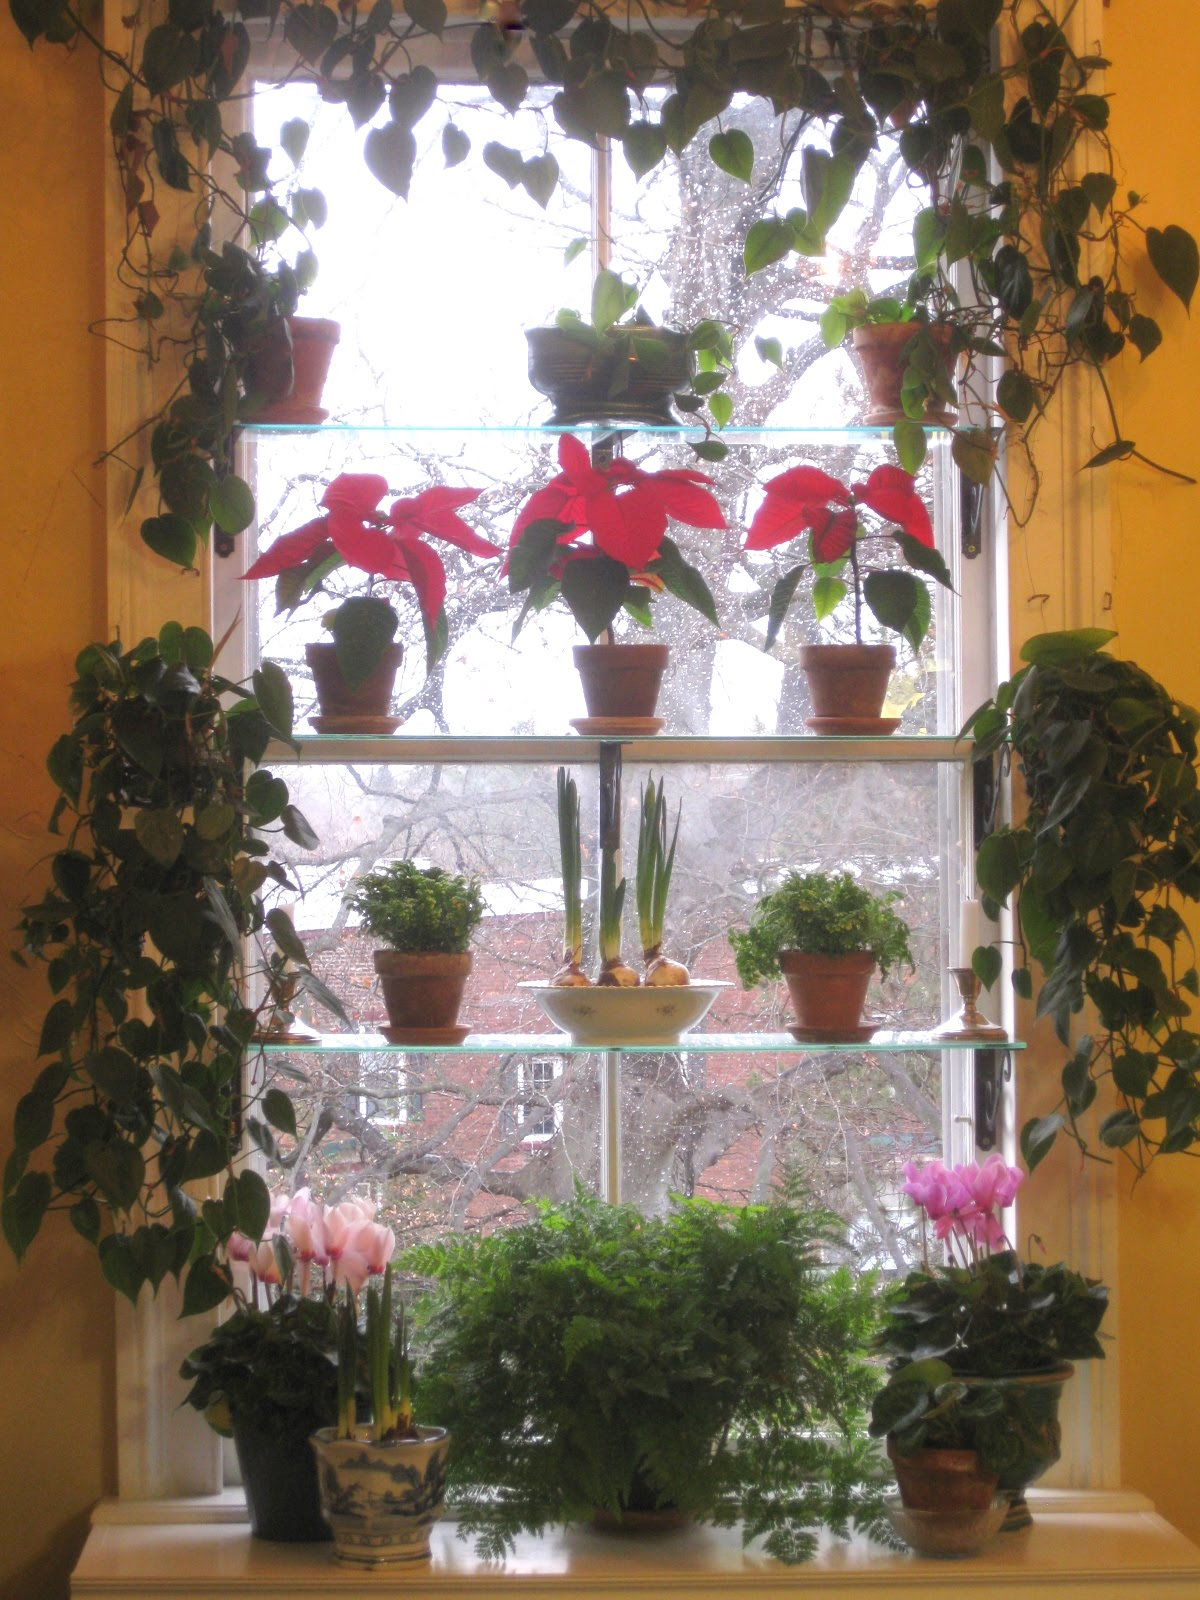 The Window Garden in December